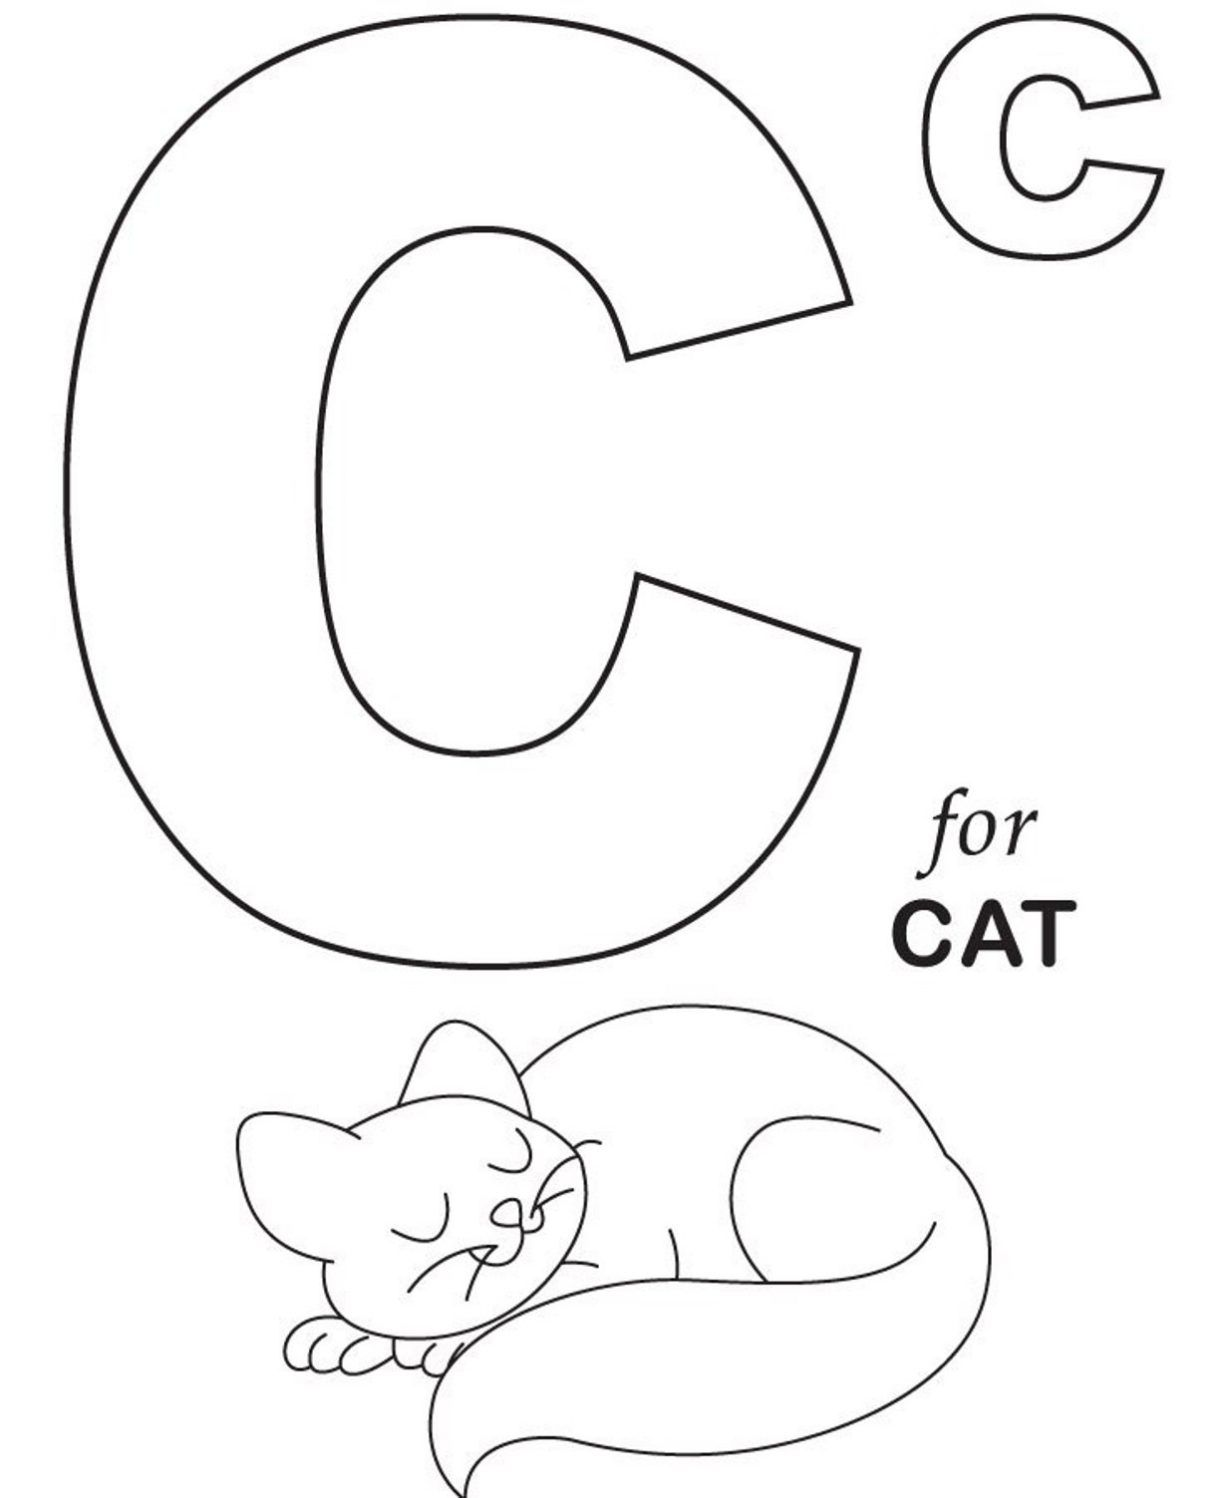 Free Printable Letter C Worksheets For Kindergarten